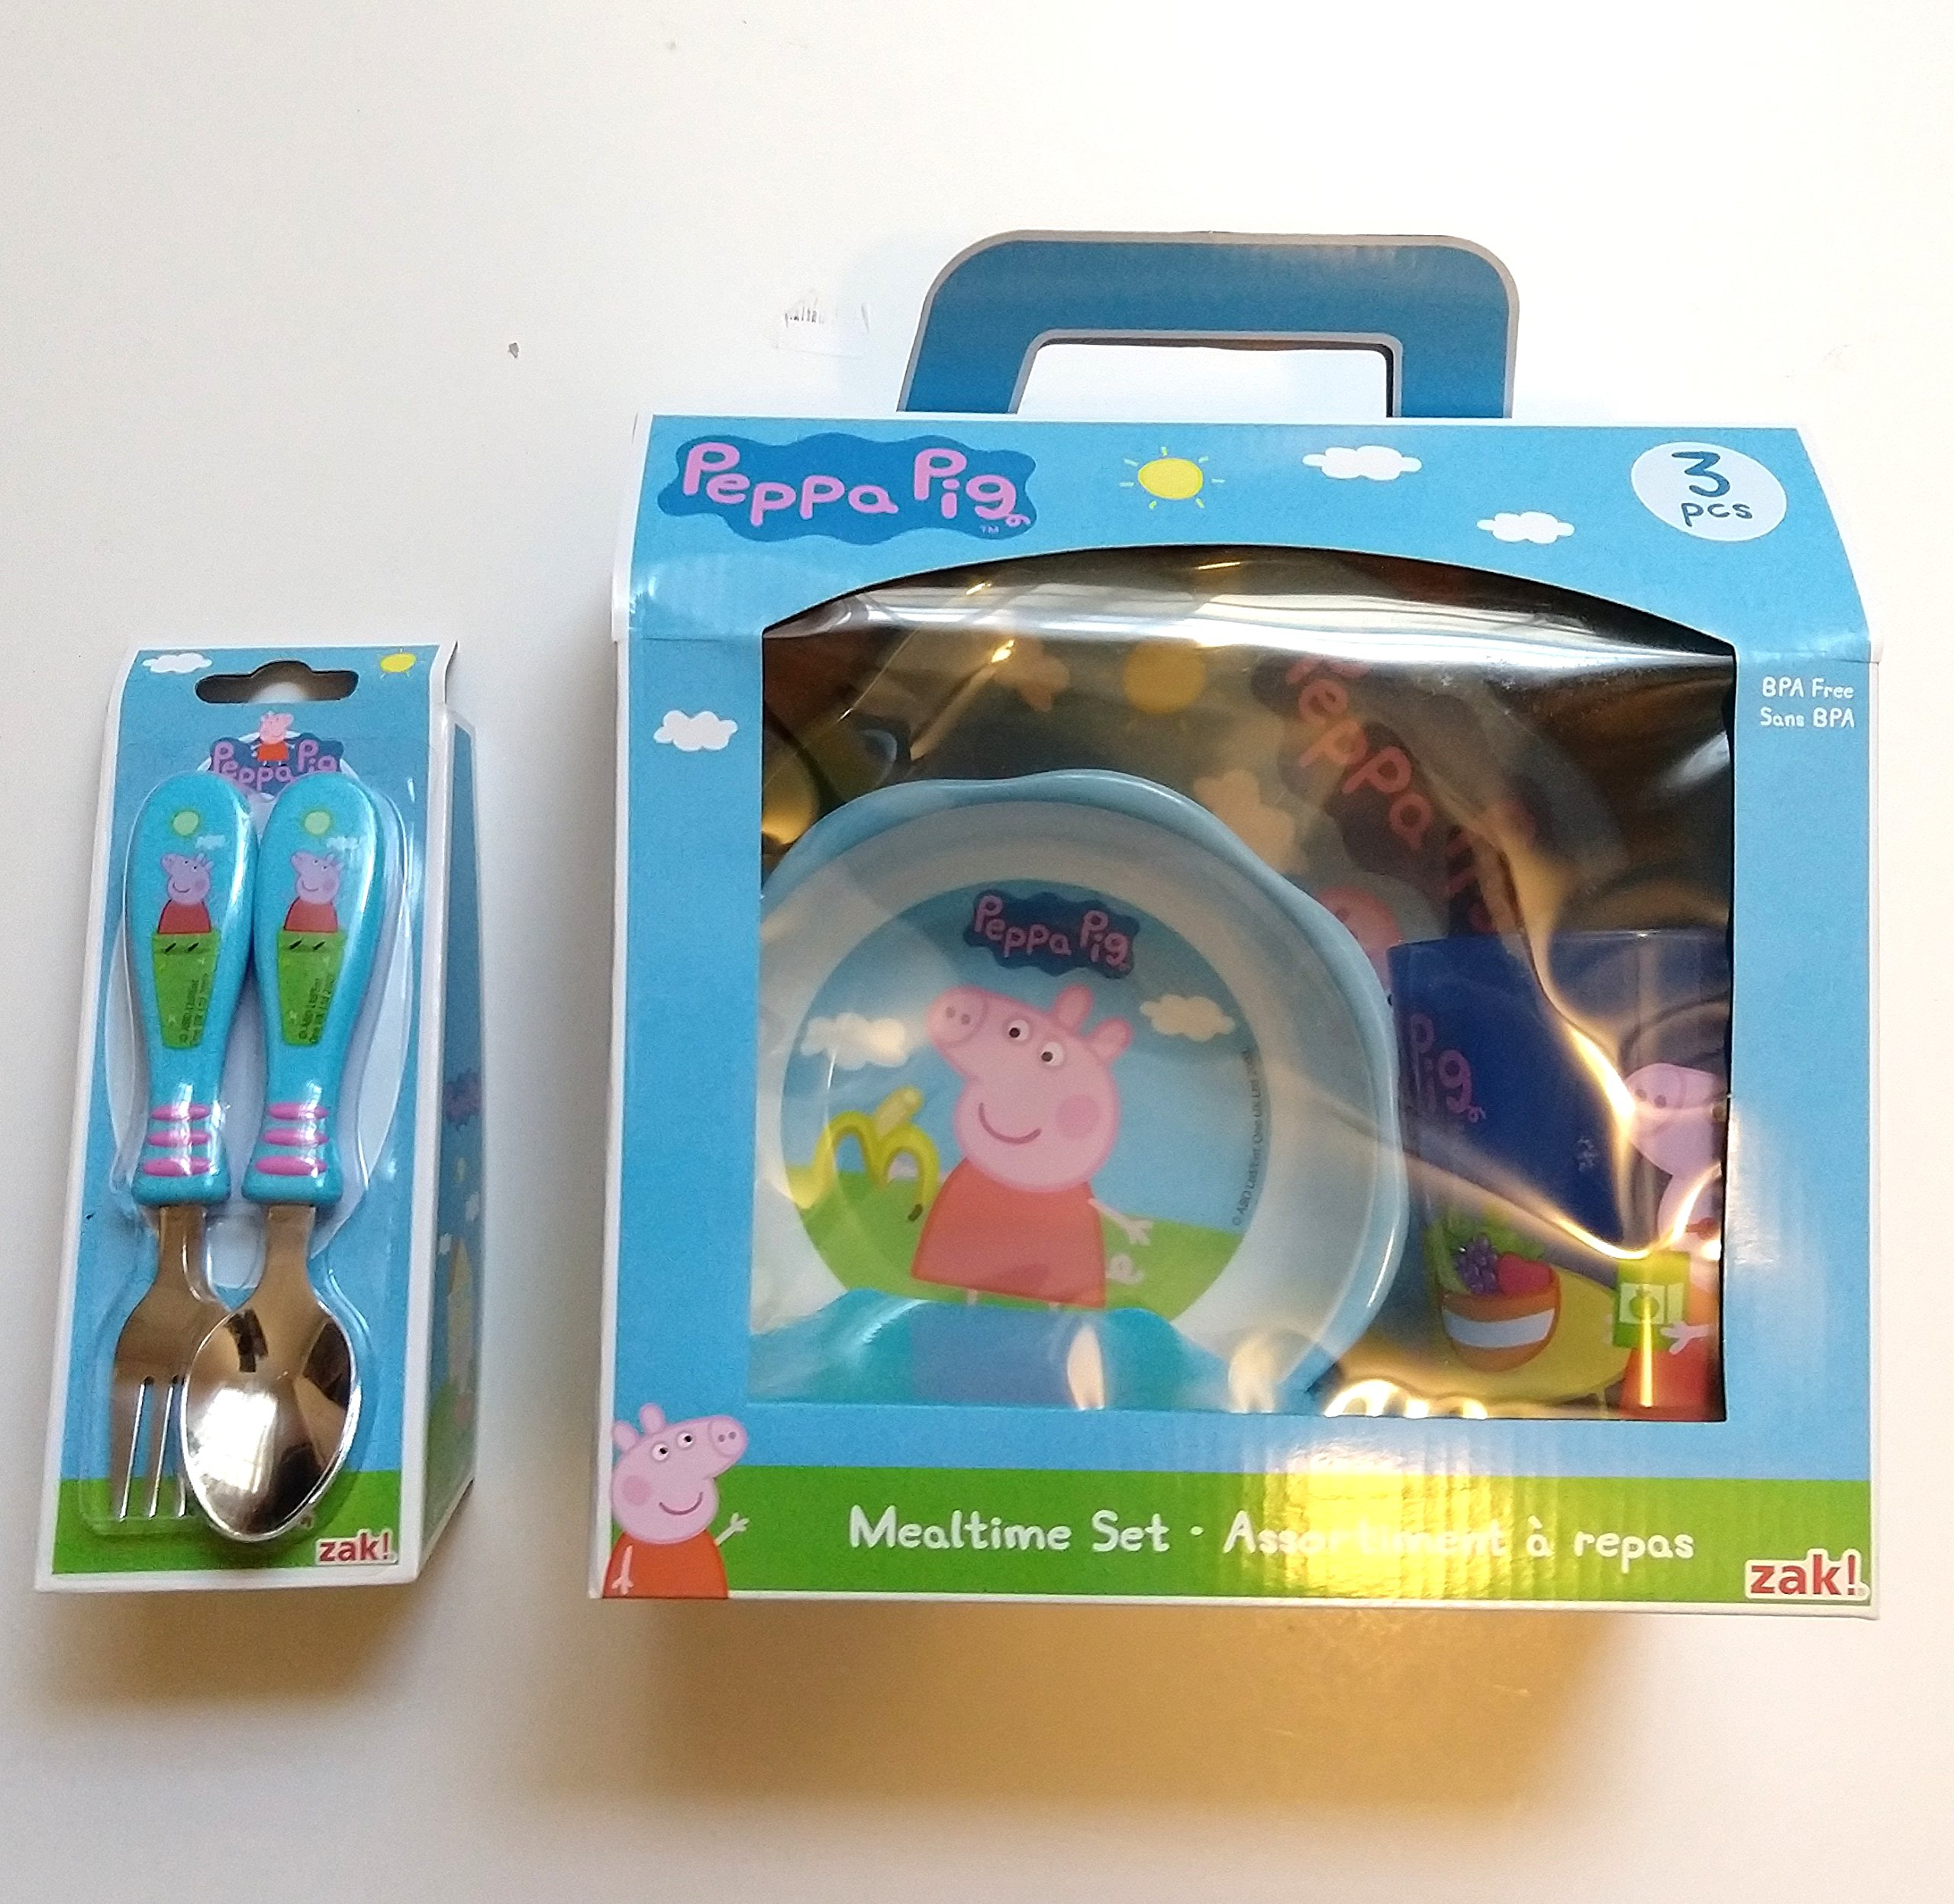 Peppa Pig Mealtime Set with Plate, Bowl and Tumbler, Break Resistant and BPA-free Plastic, 5 piece set by Zak! Designs